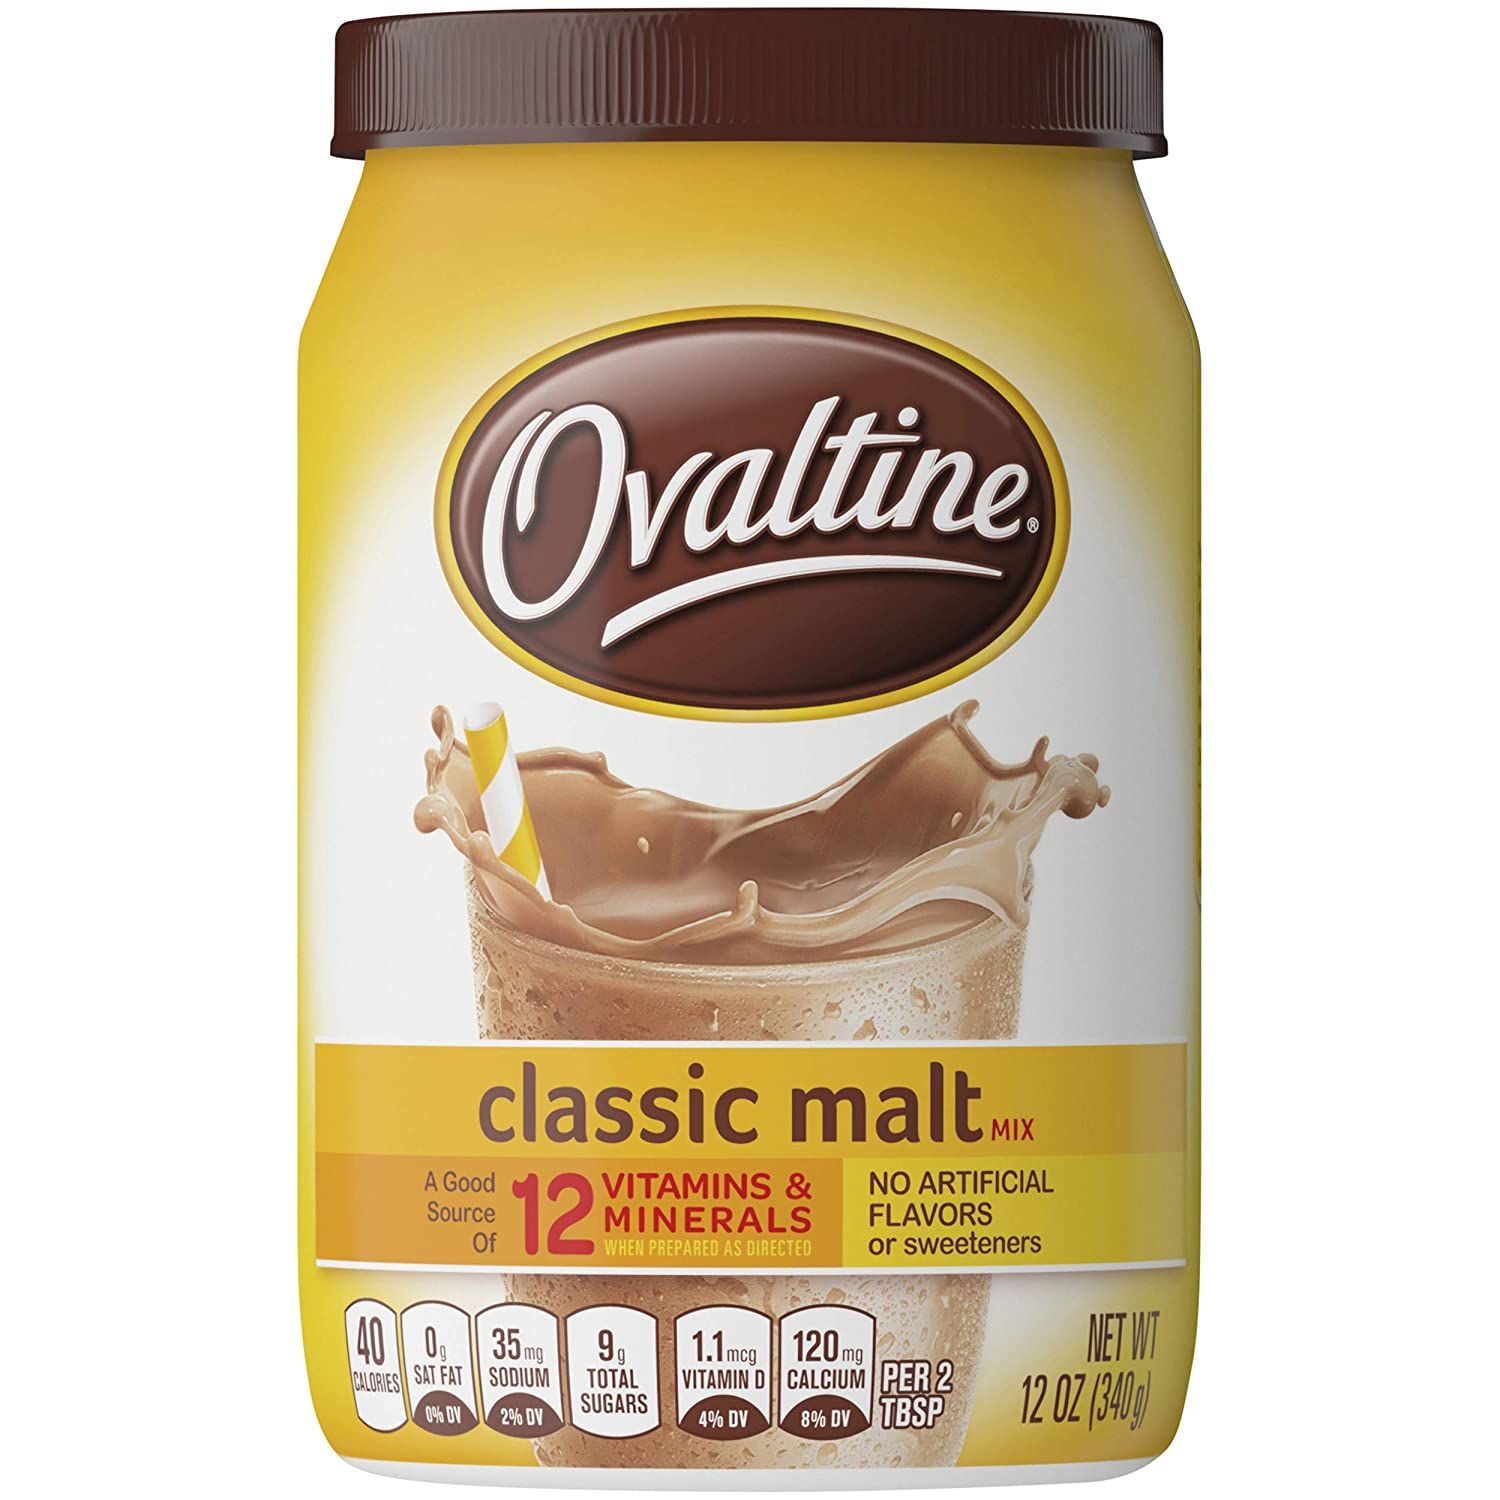 OVALTINE Classic Malt Drink Mix 12 oz. Canister